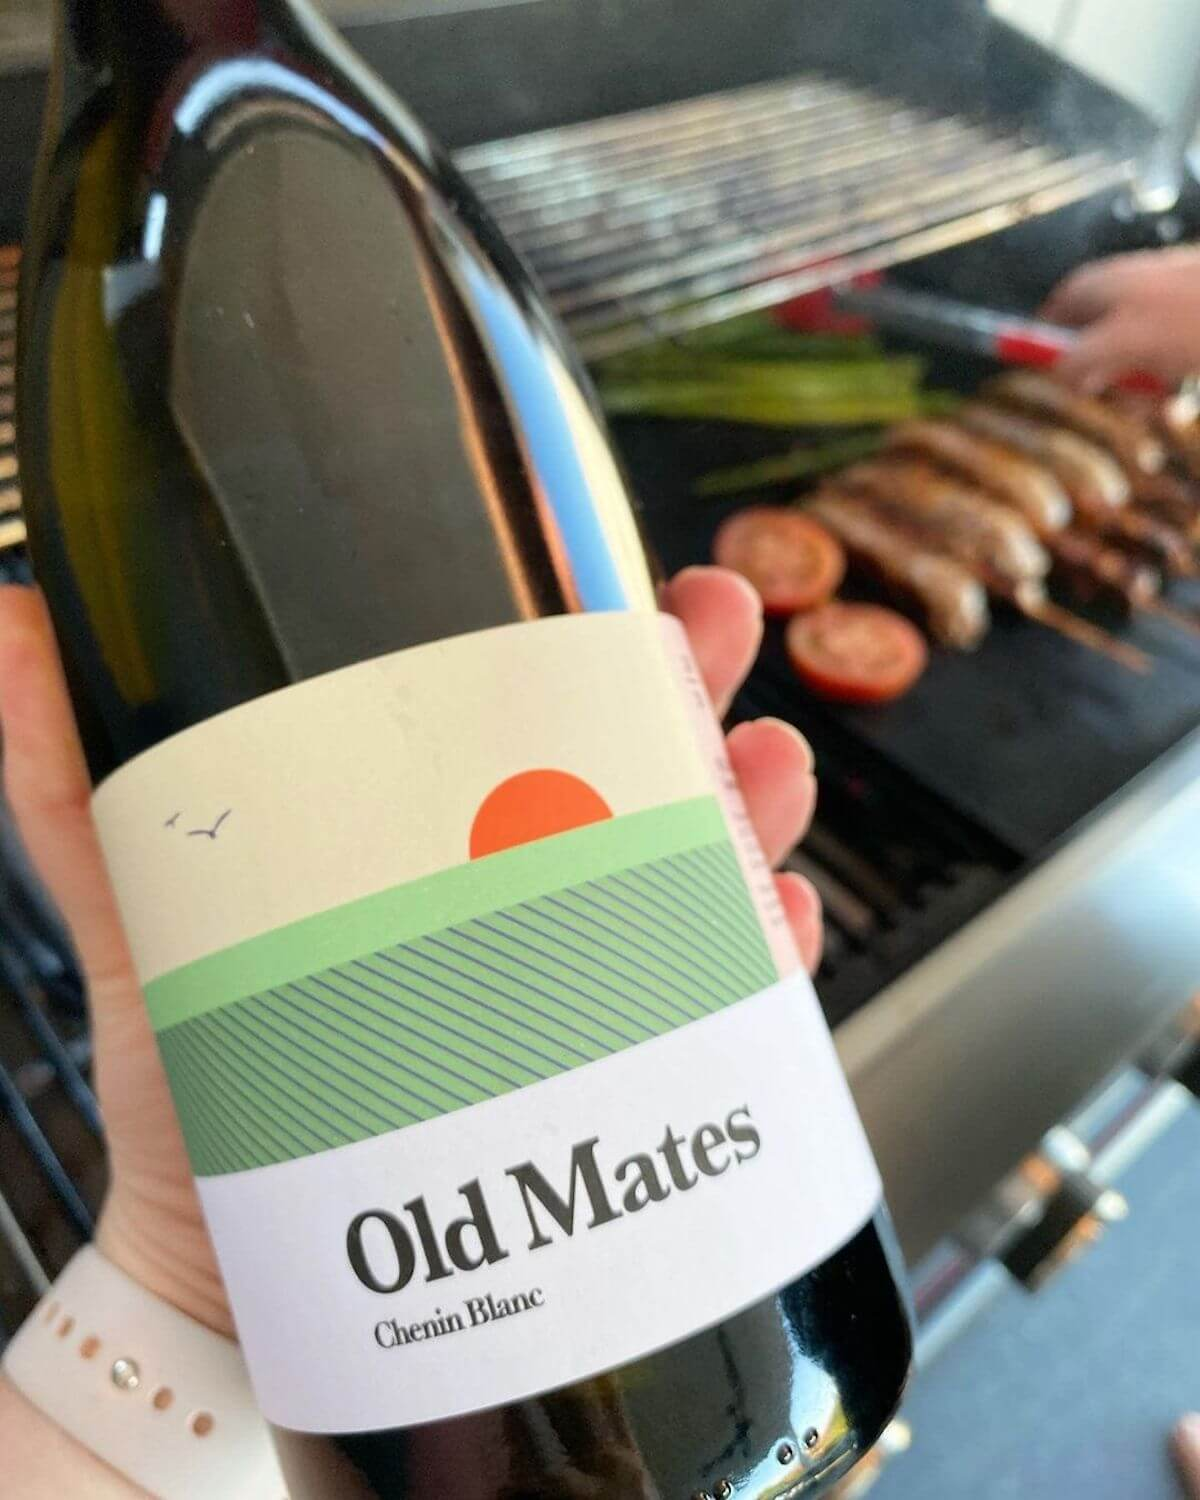 Old-Mates-2019-Chenin-Blanc-South-Africa